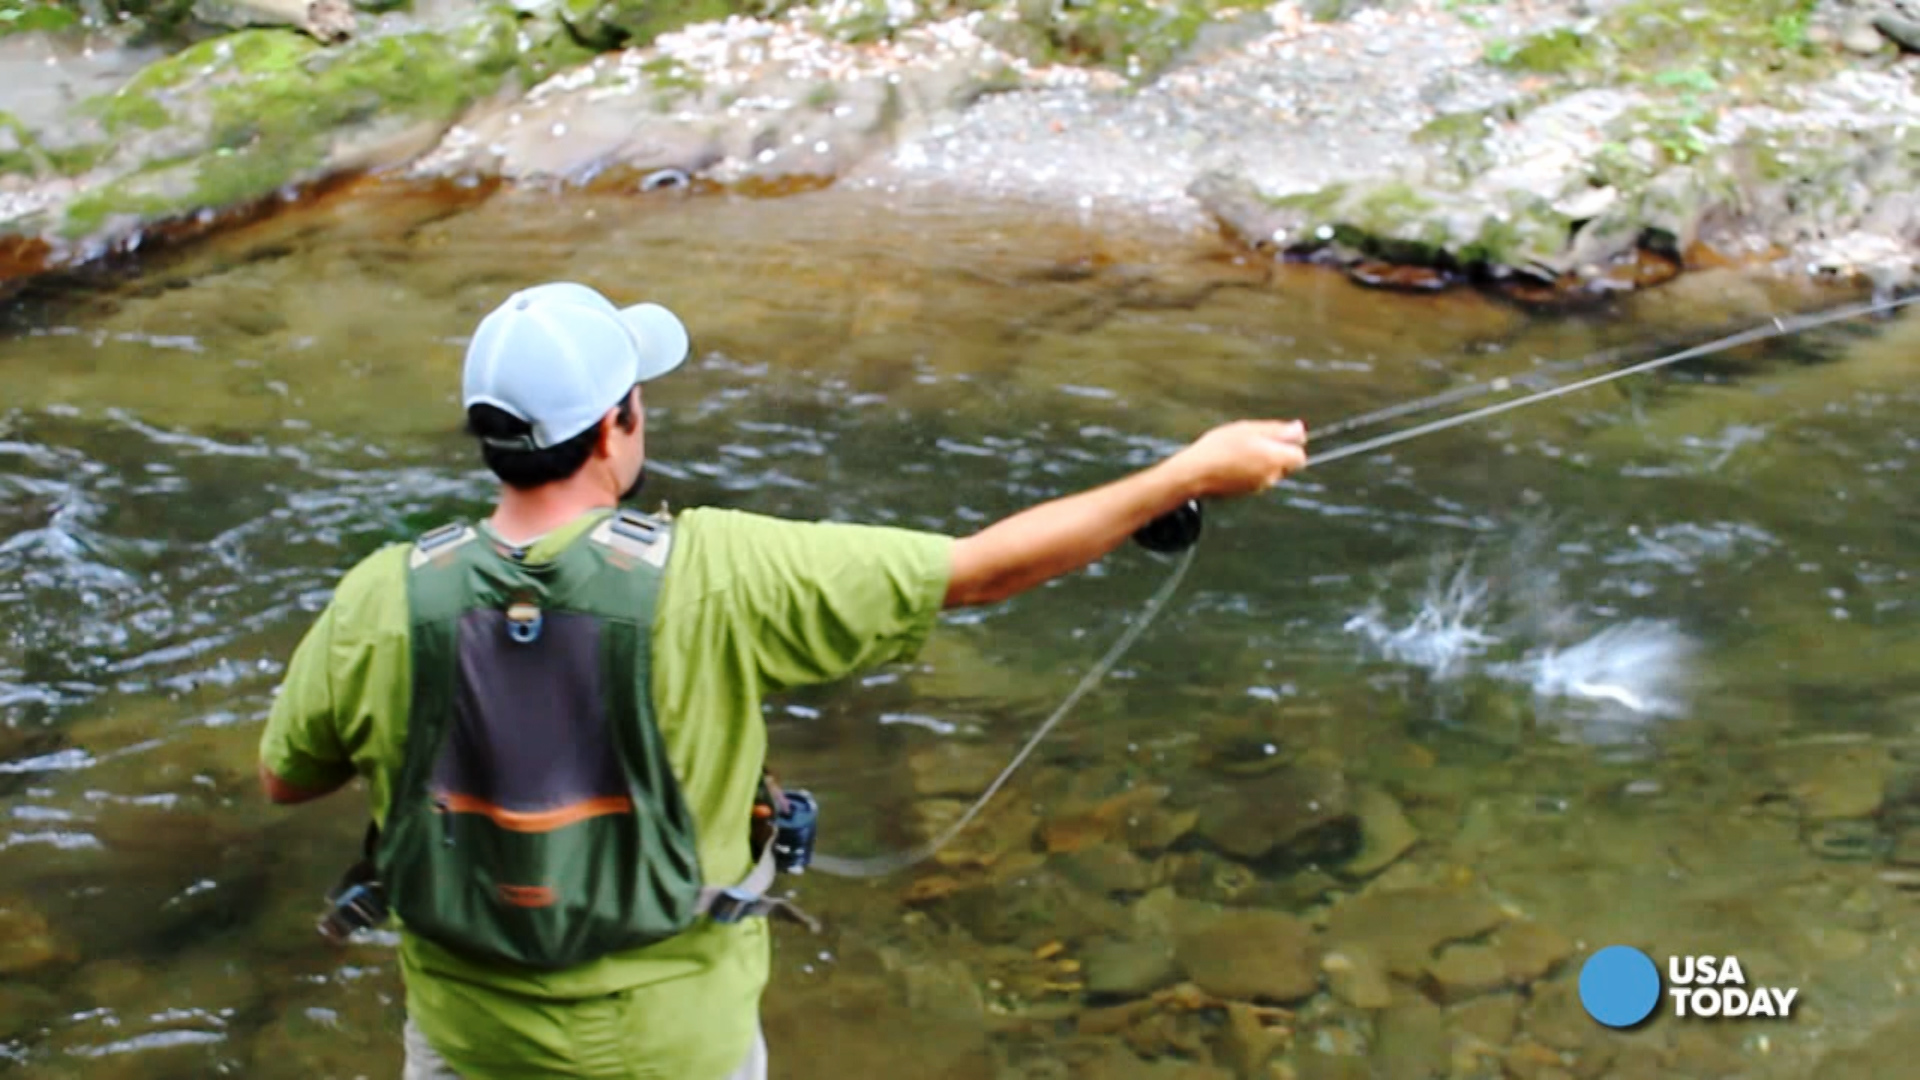 Fly Fishing Helps Disabled Veterans Recovery